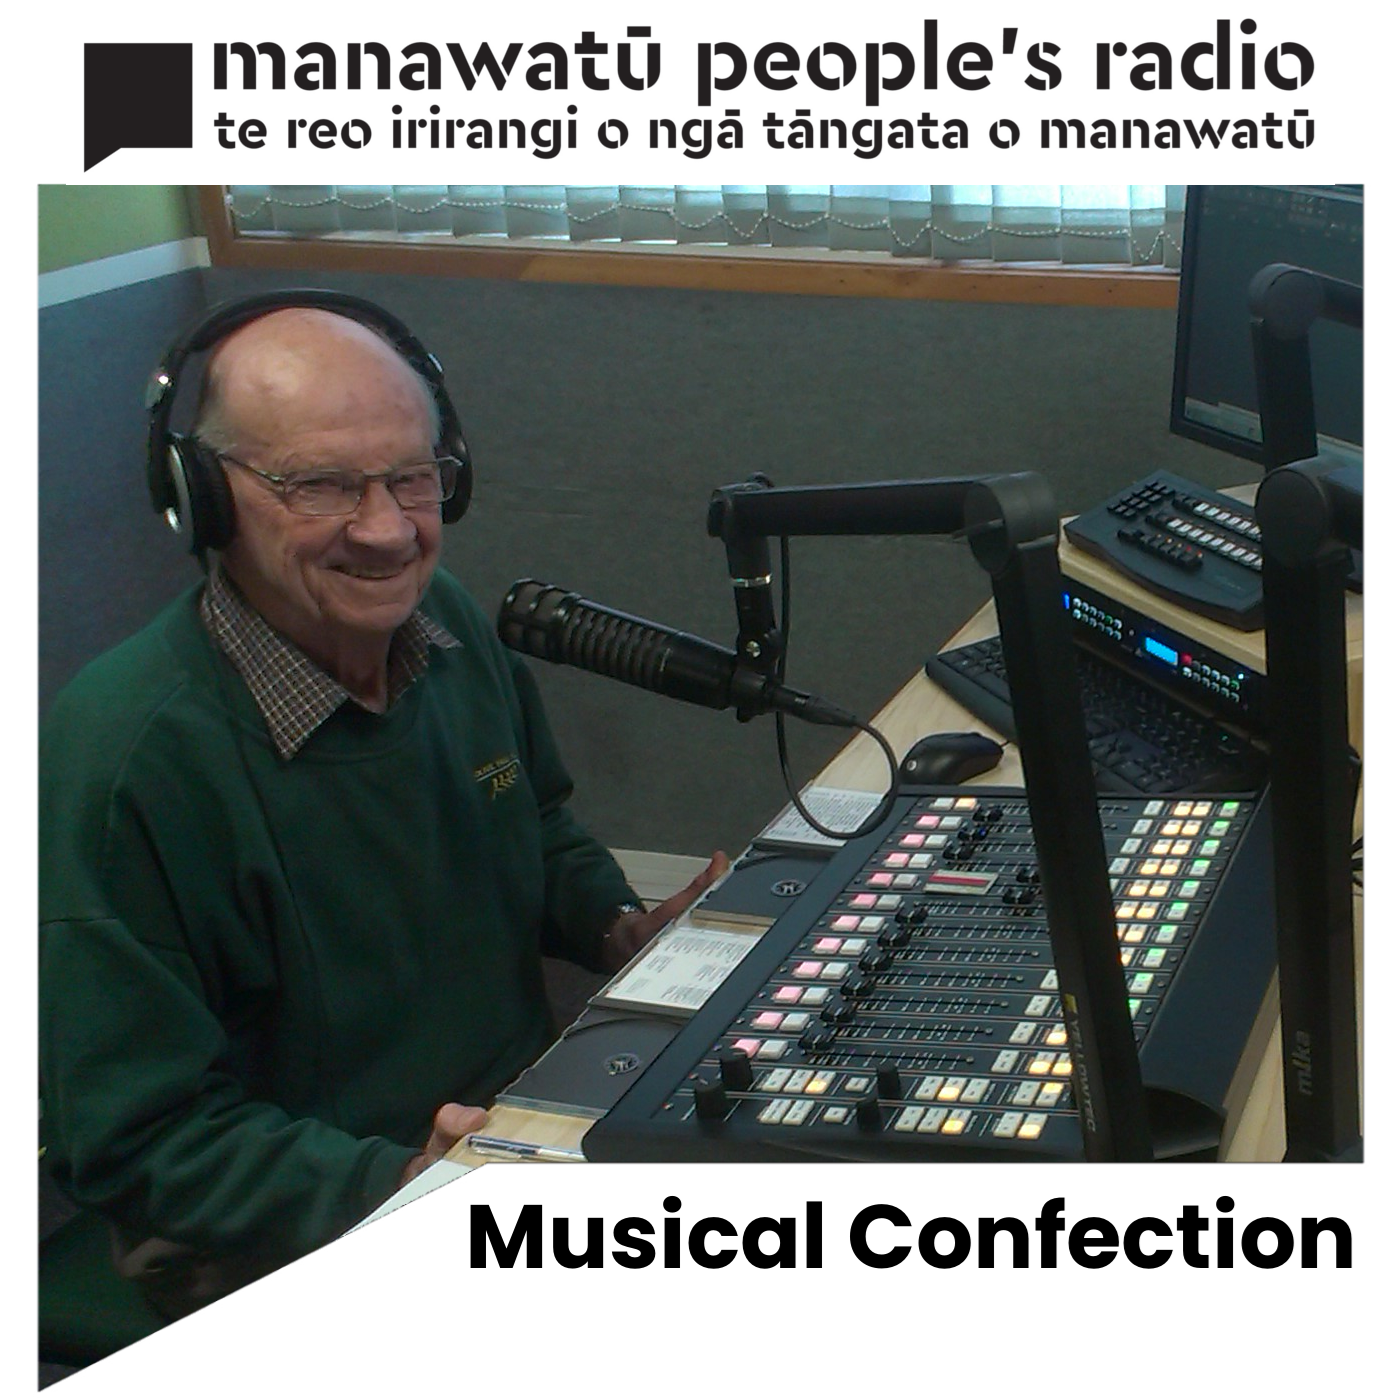 https://cdn.accessradio.org/StationFolder/manawatu/Images/MPRMusicalConfection.png